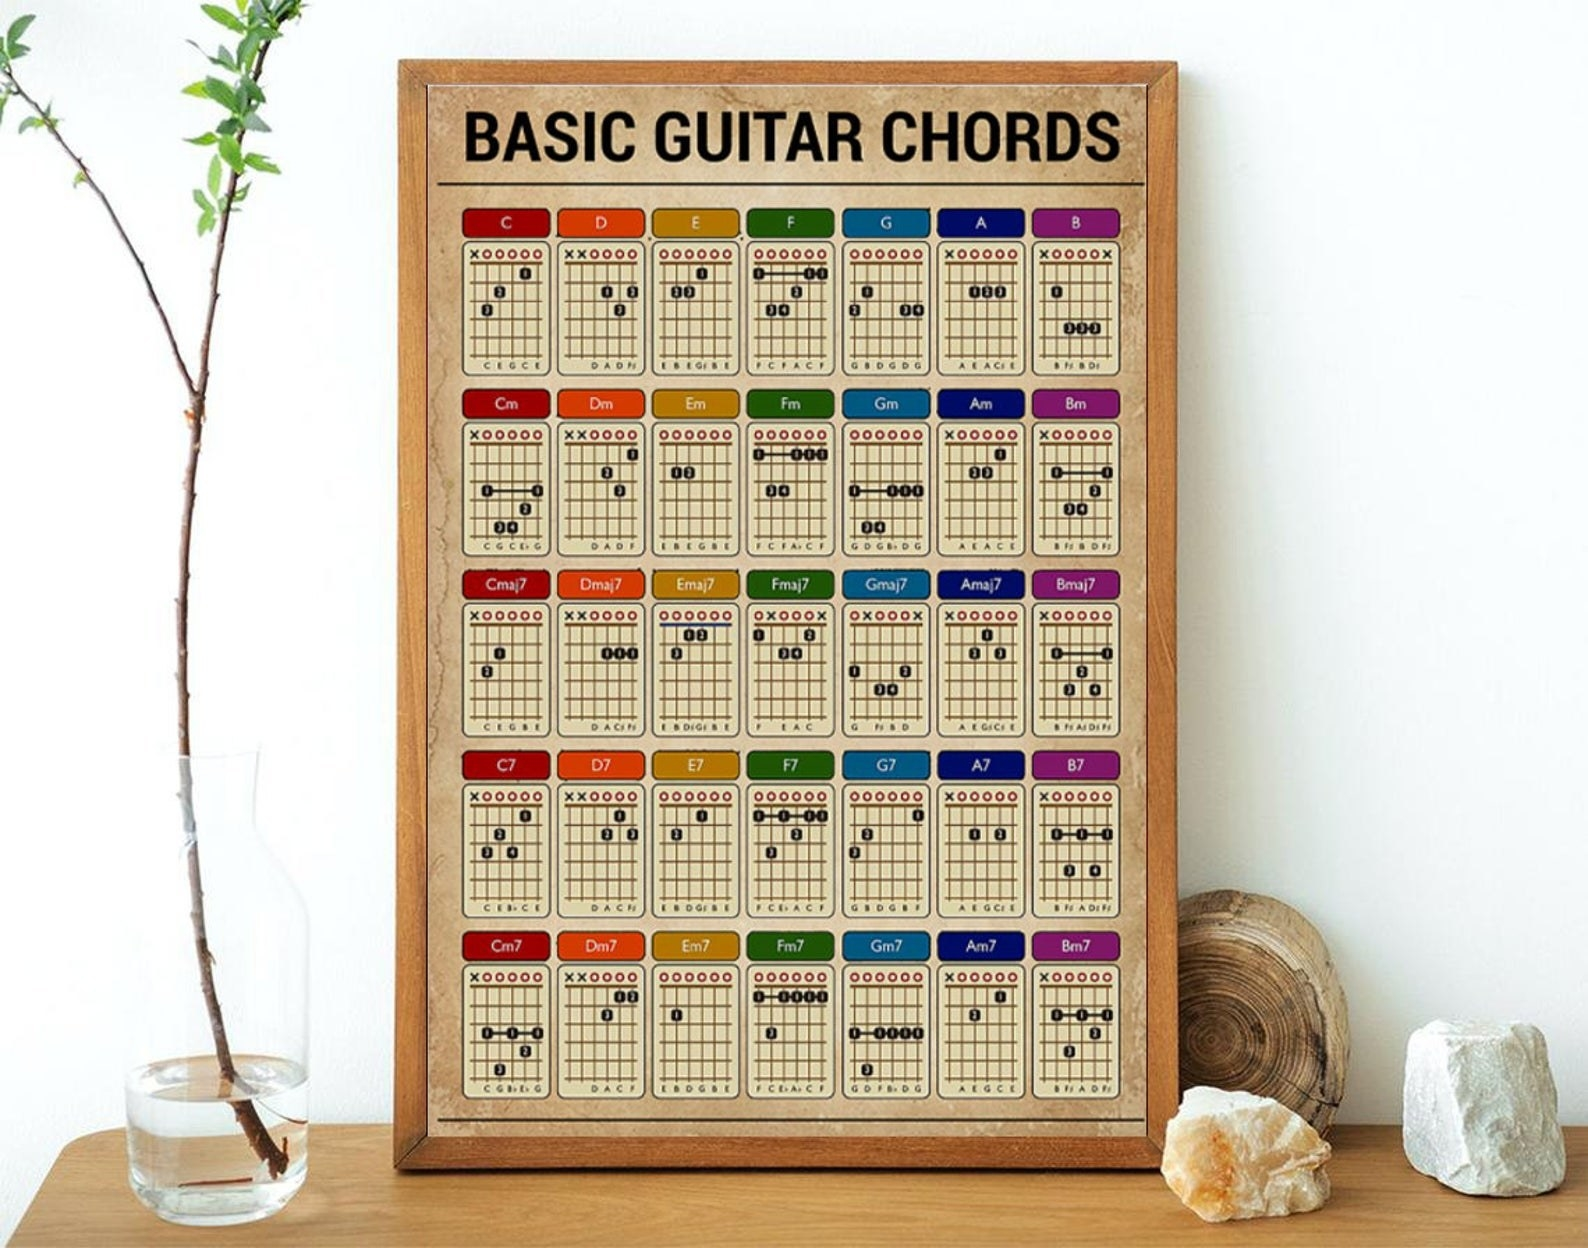 The basic guitar chords poster